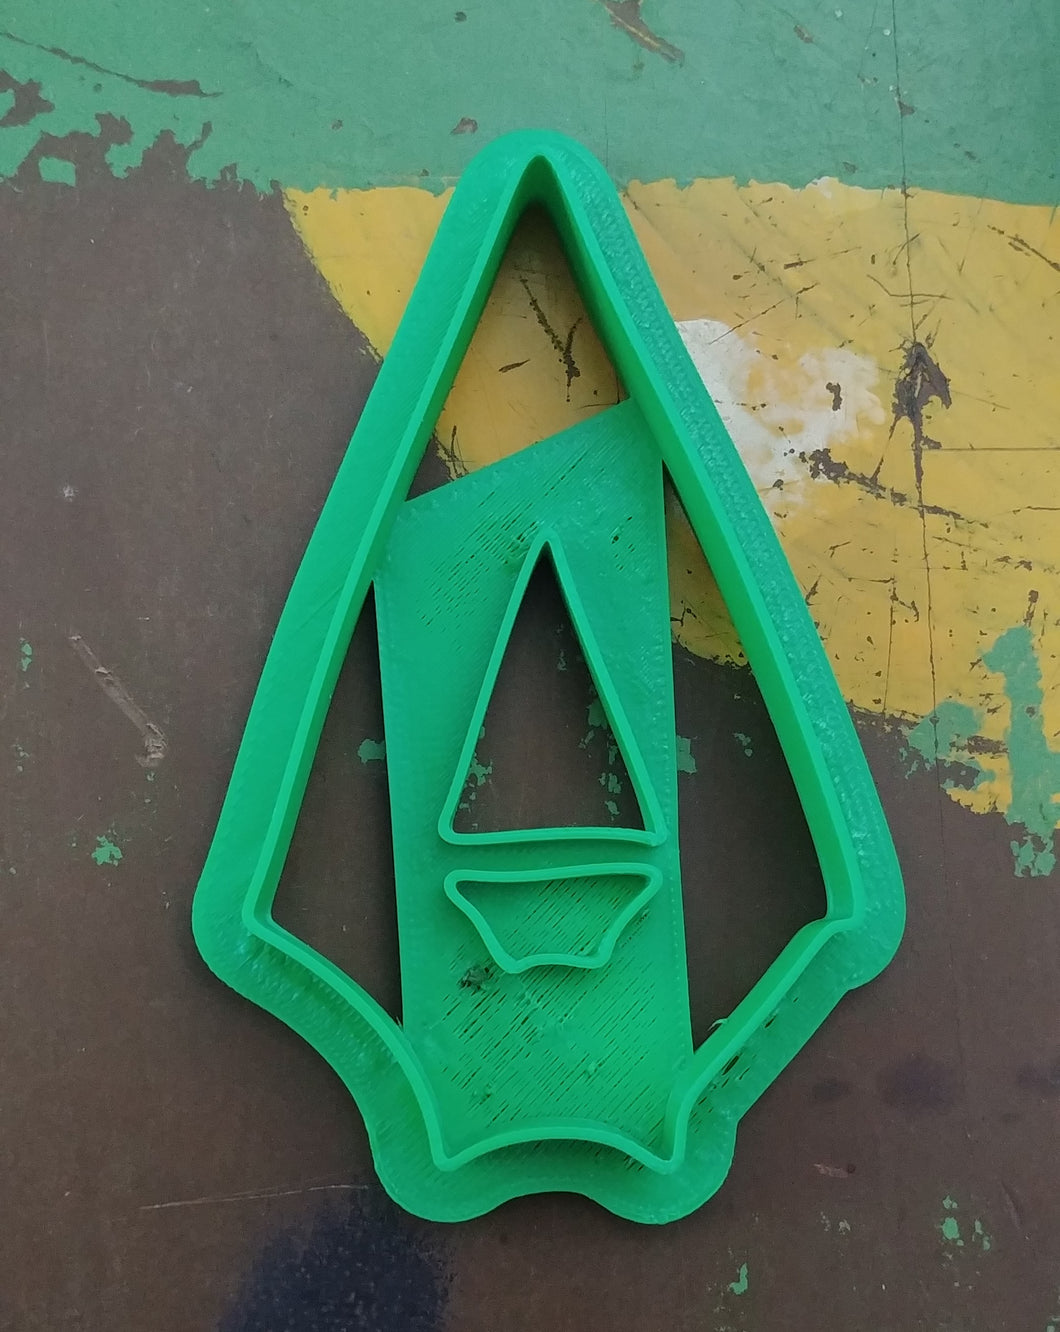 3D Printed Cookie Cutter Inspired by DC Comics Green Arrow Logo